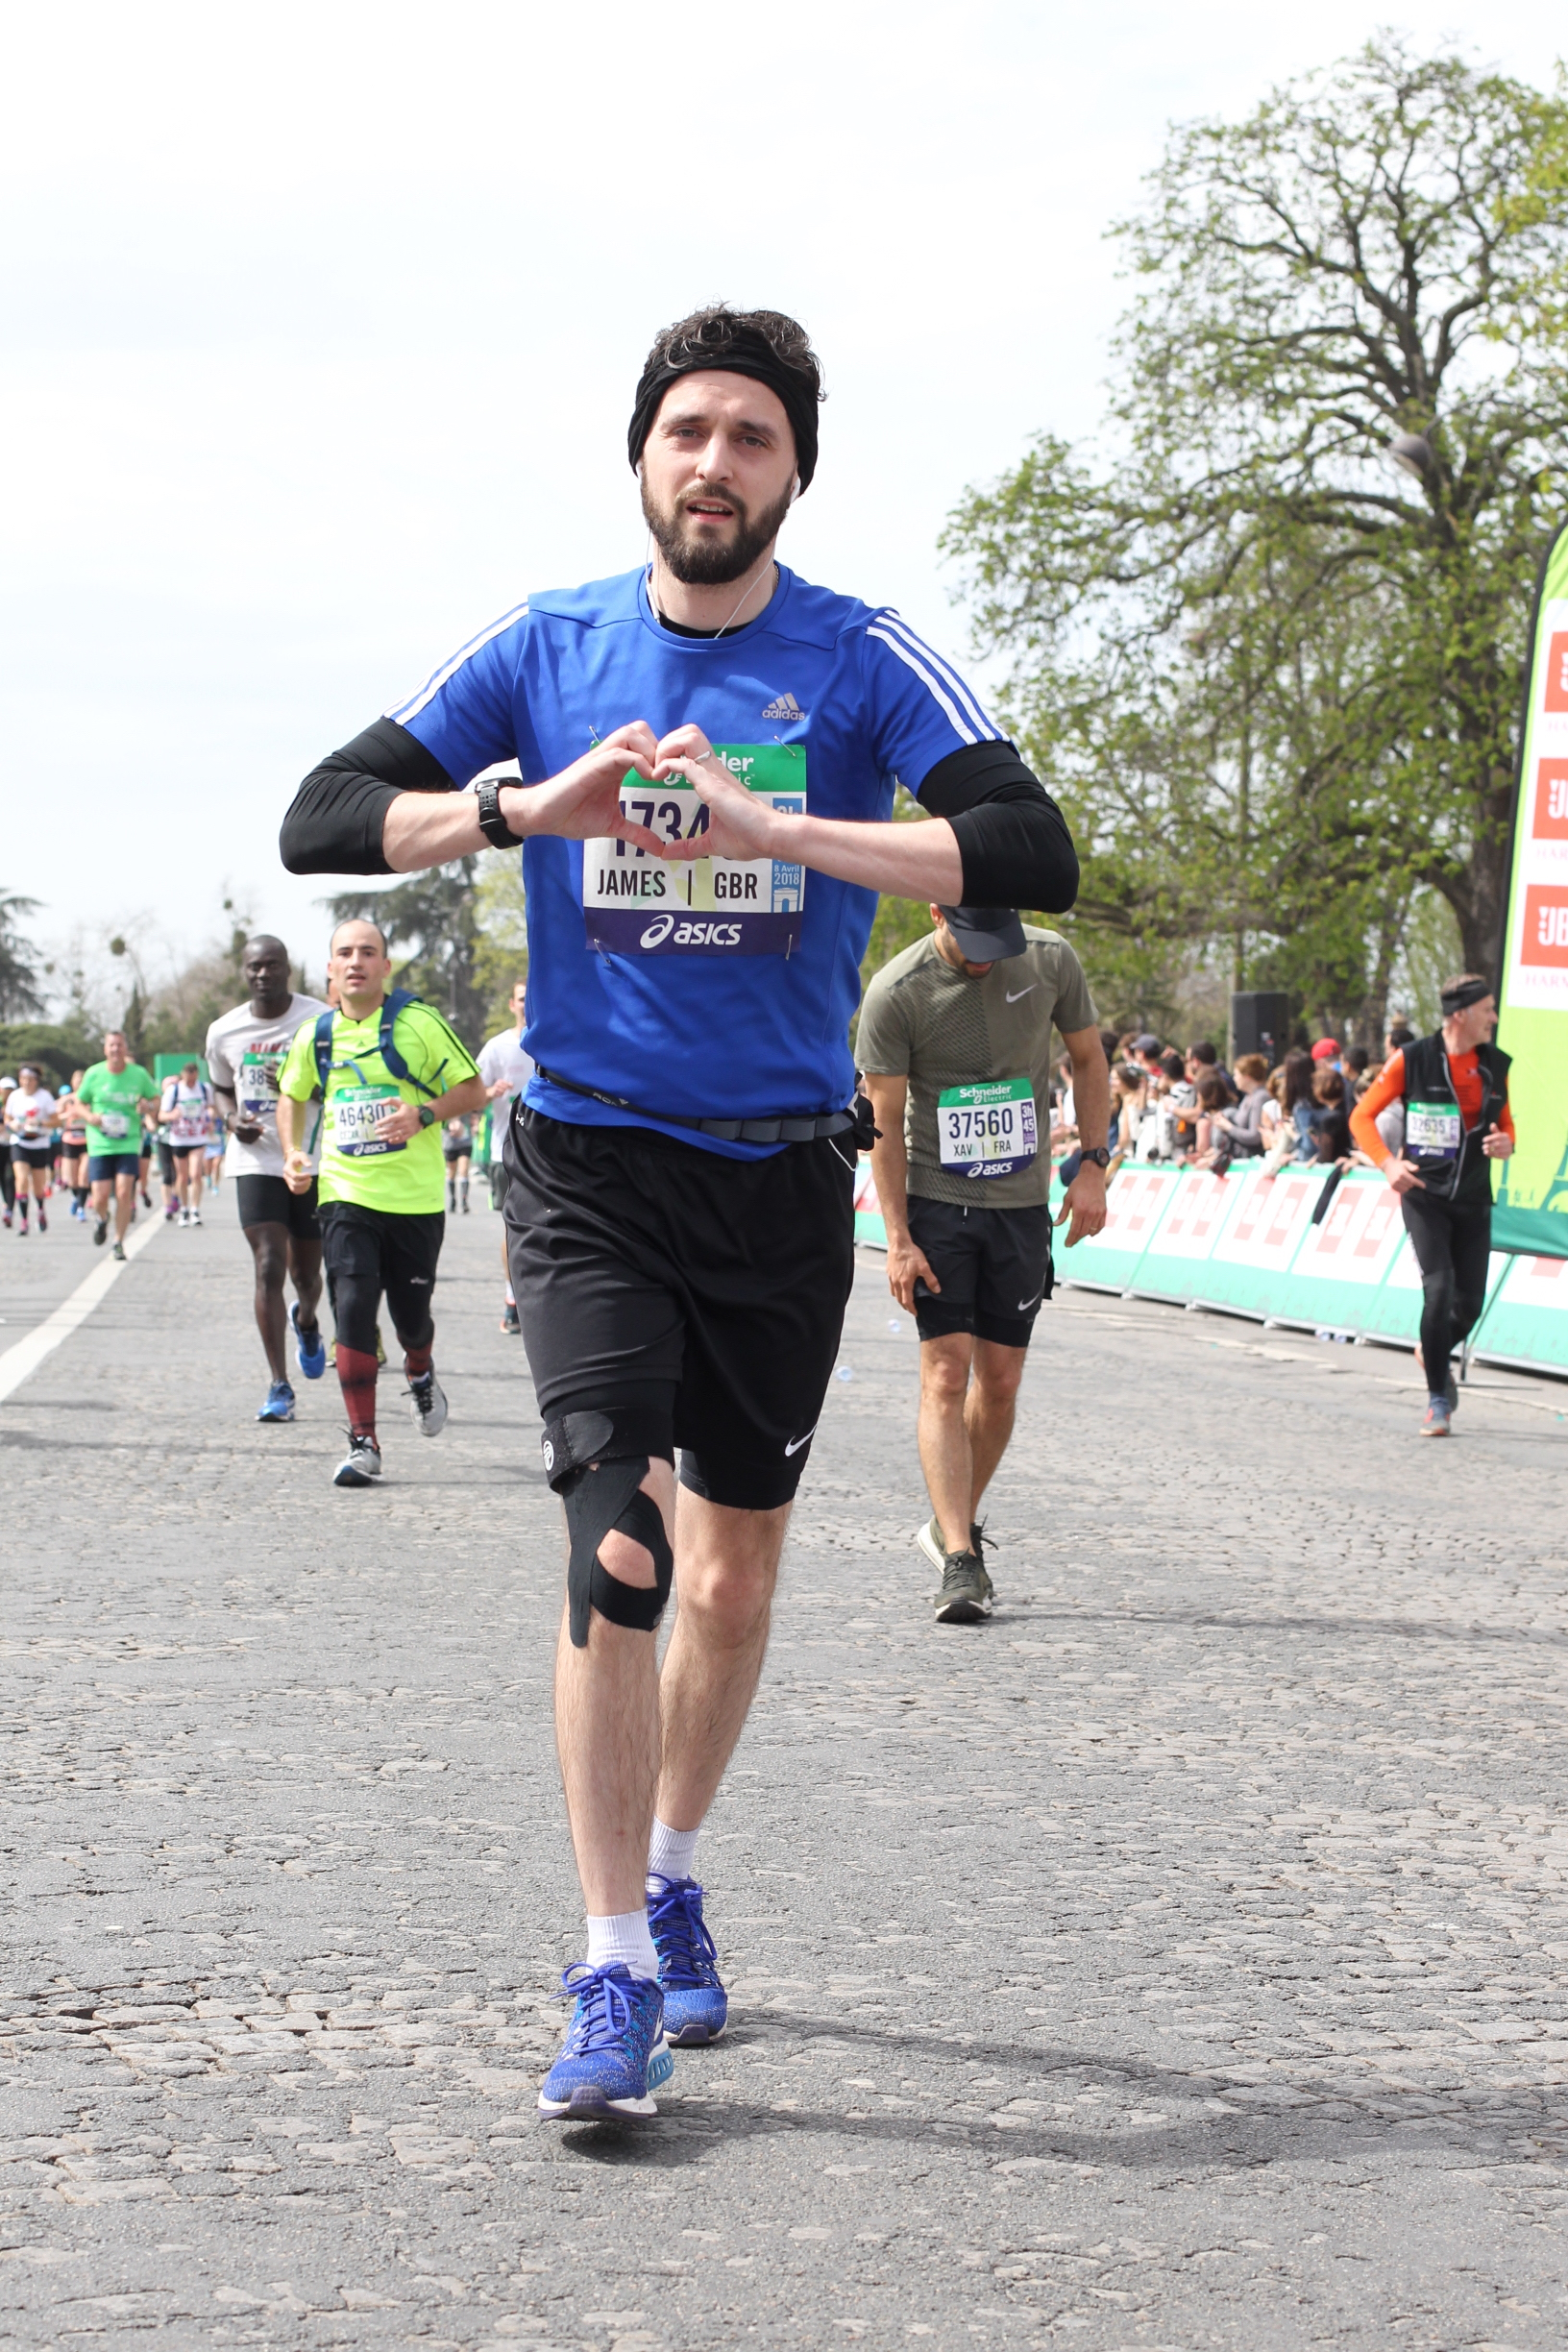 My husband, James, who was in utter agony for 20 miles - but kept going. Proof that formidable mental resilience is as important as physical endurance when it comes to the marathon!